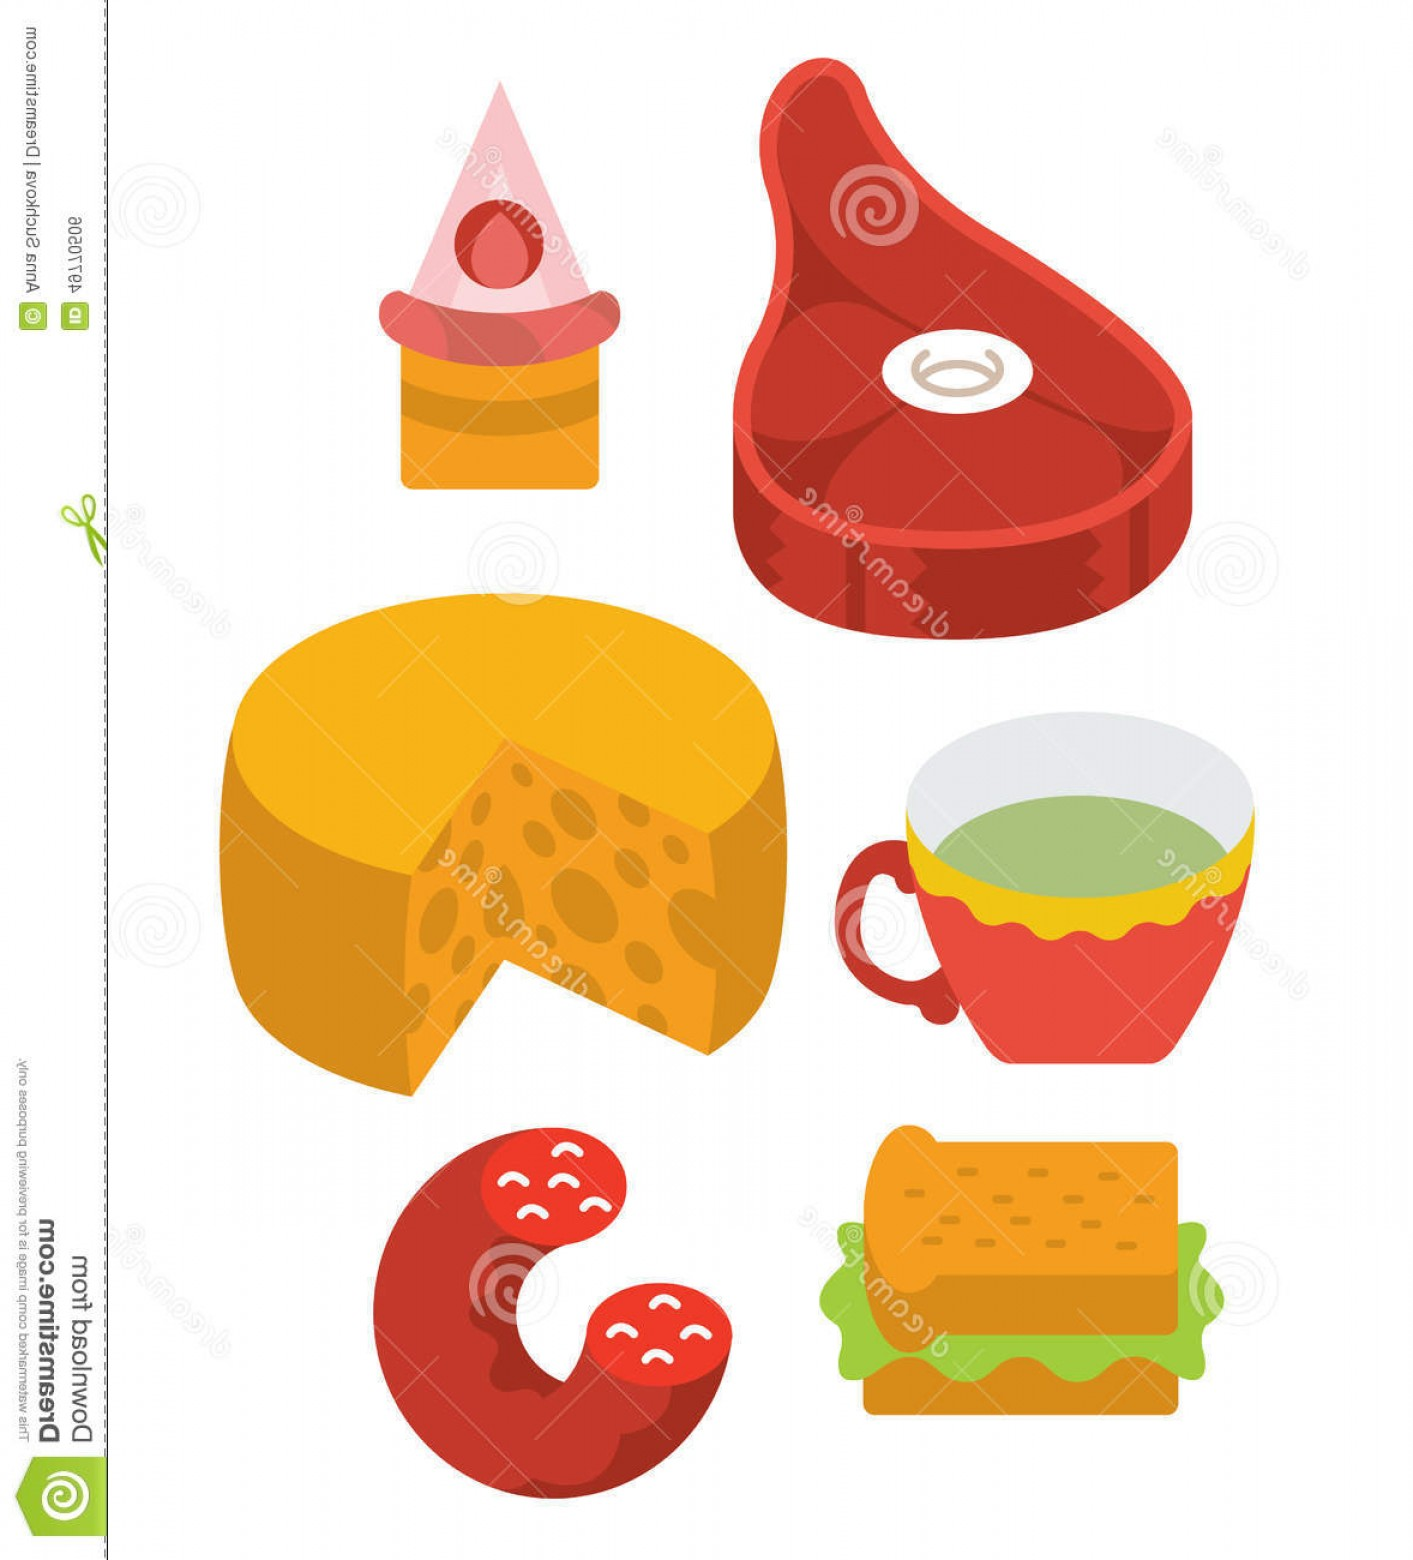 Vector Protein: Stock Illustration Protein Food Full Color Flat Design Icon Vector Illustartion Stylized Perspective Image